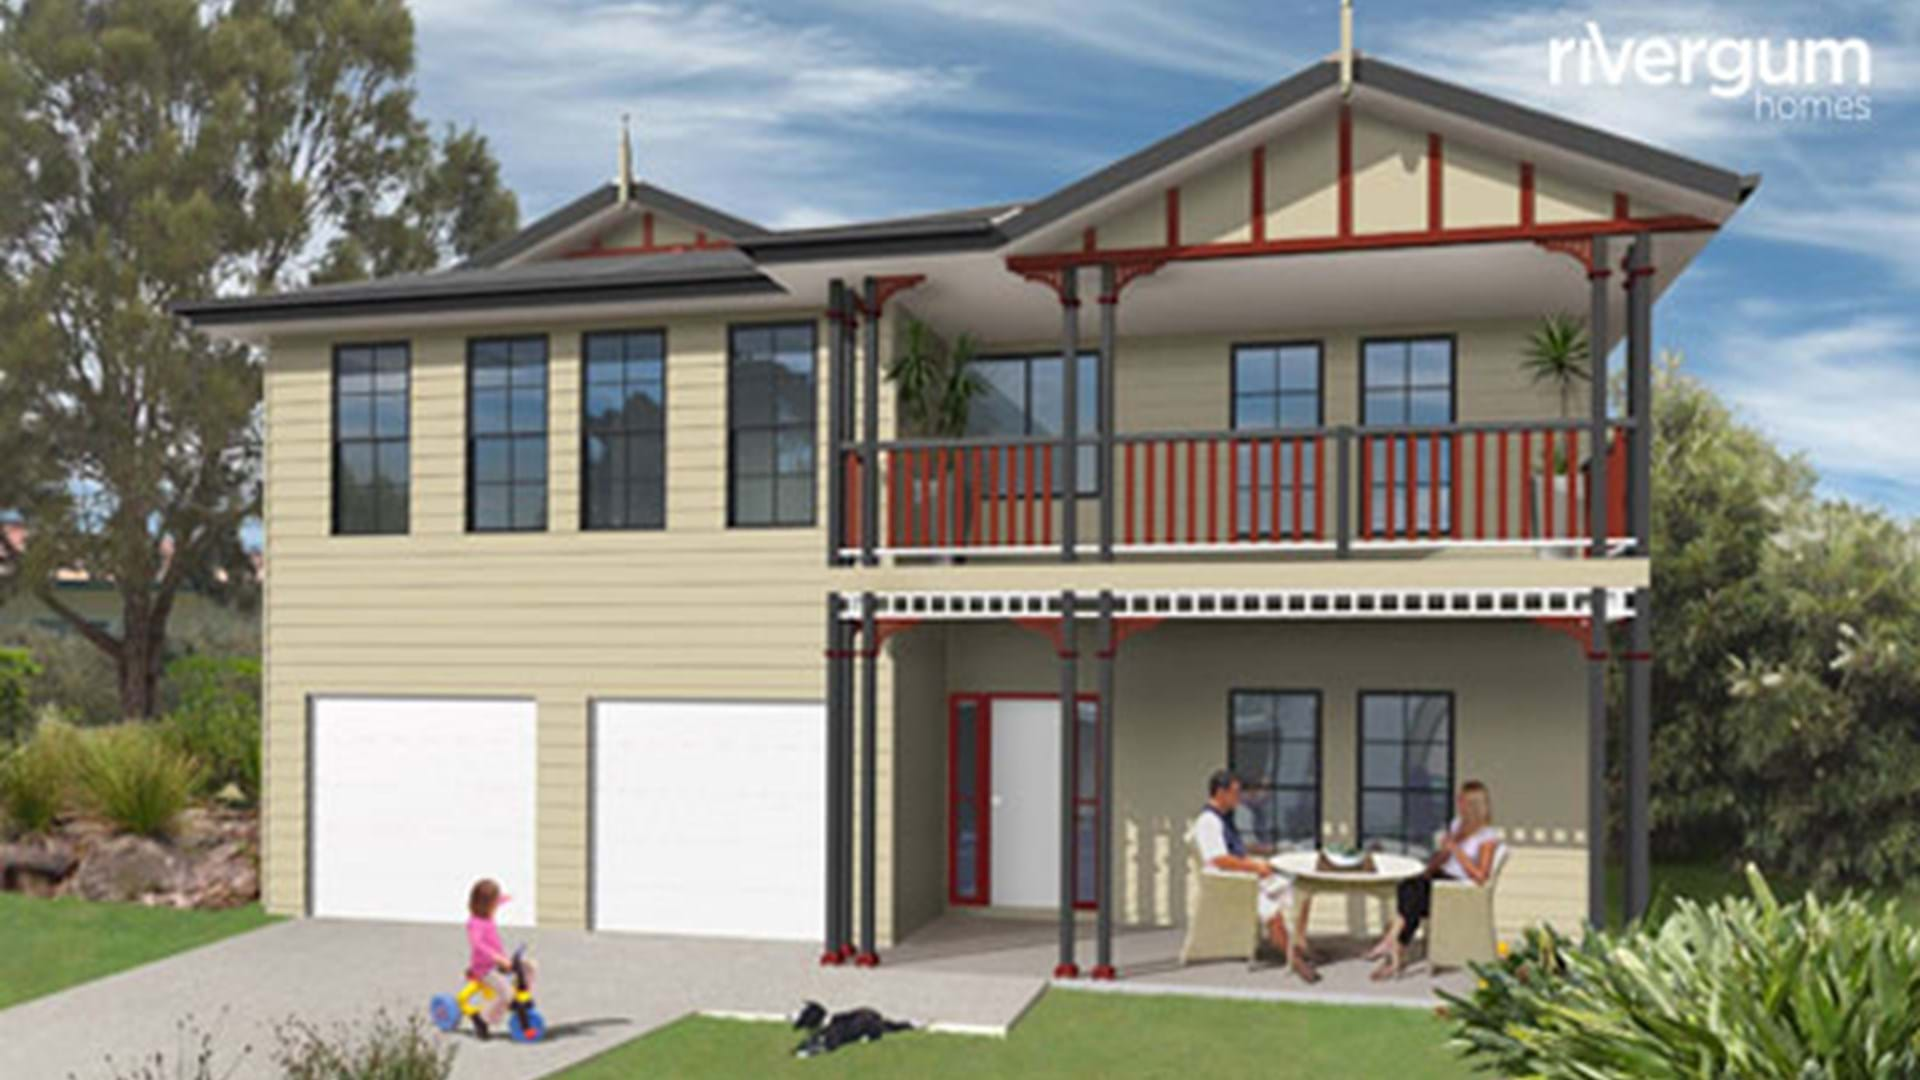 Beachcomber Home Design By Rivergum Homes